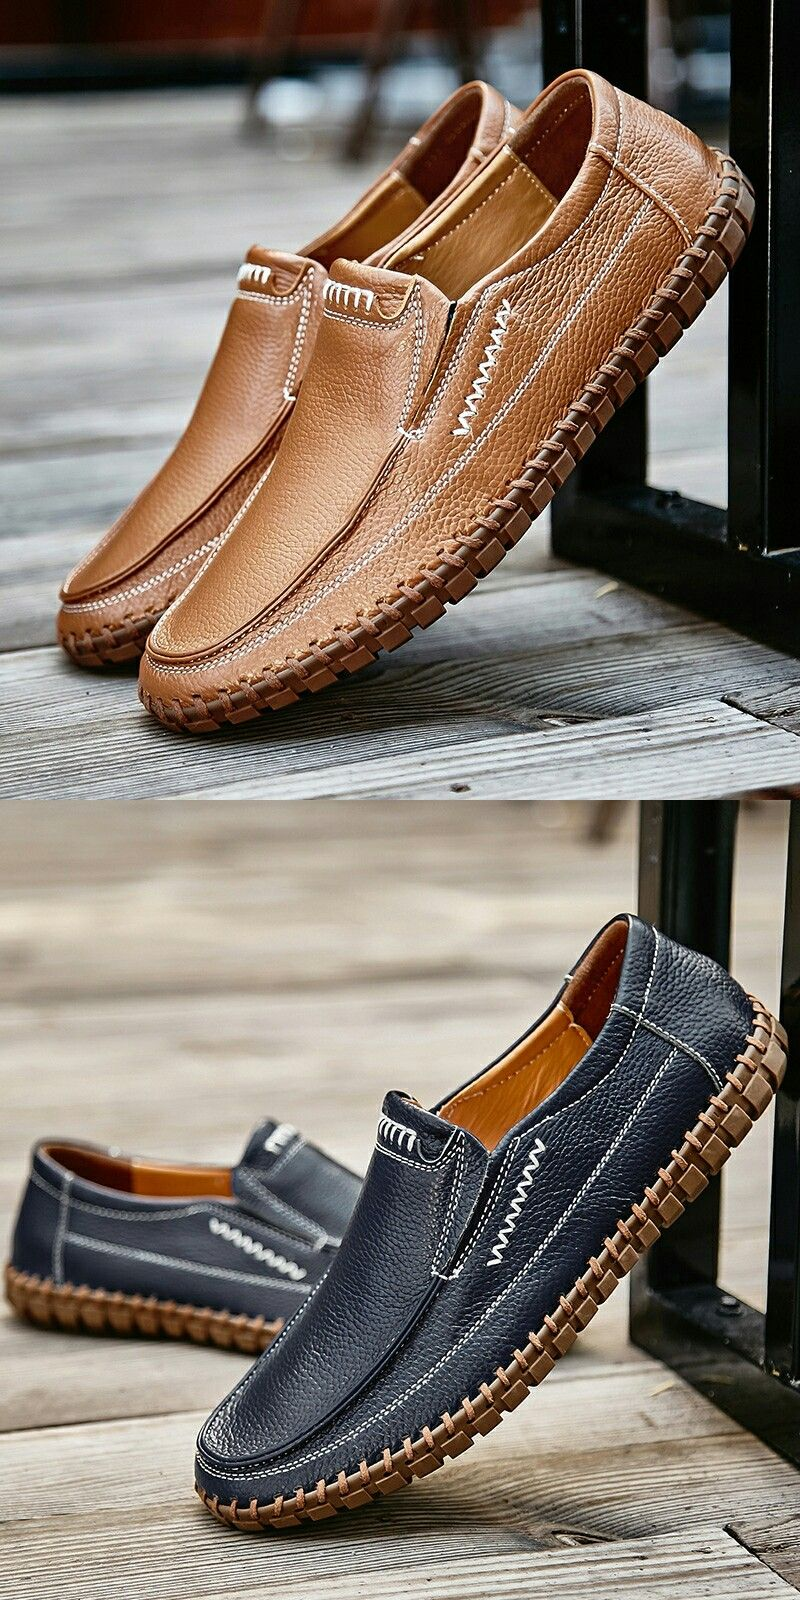 Handmade Spring Soft Men's Natural Leather Shoes Casual Slip On Driving Loafers Stitching Shoes